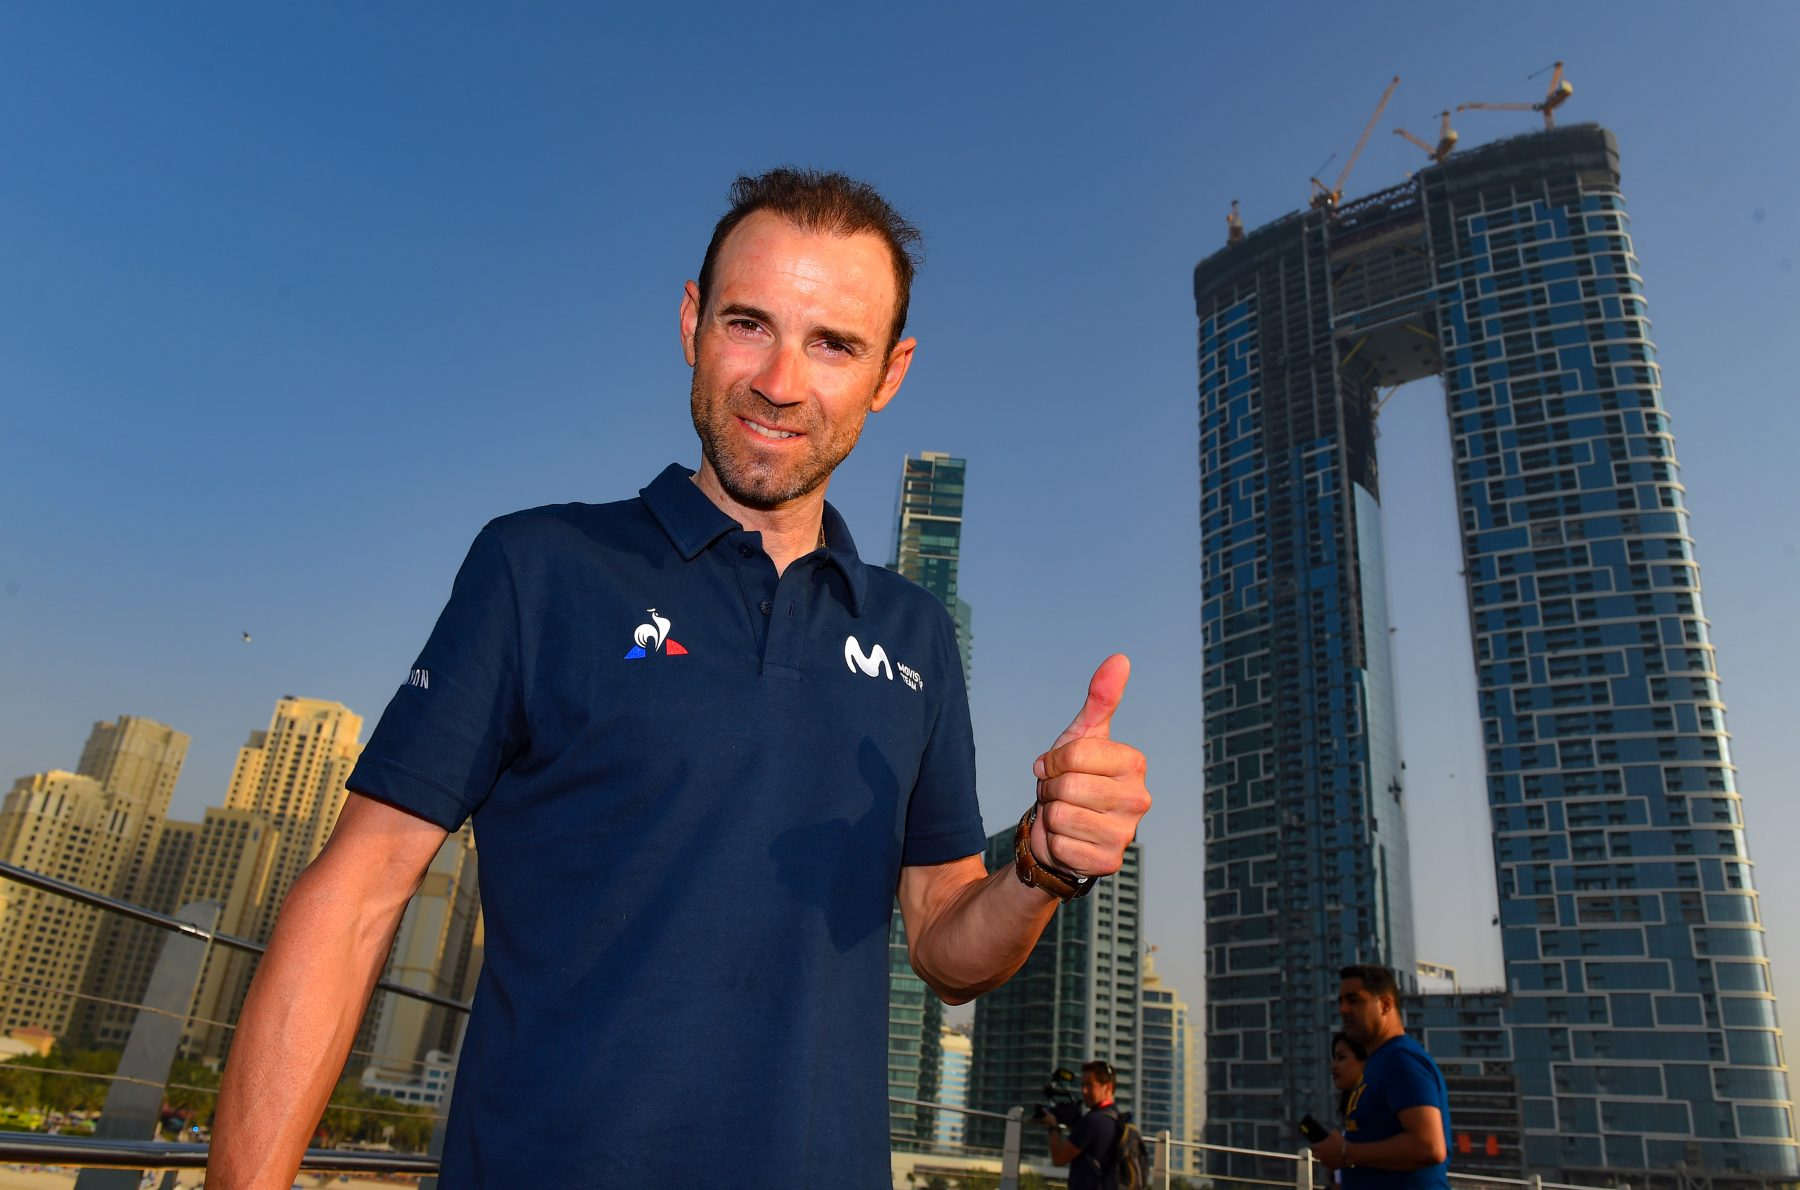 Imagen de la noticia 'Valverde, Movistar Team ready for Sunday's UAE Tour start'